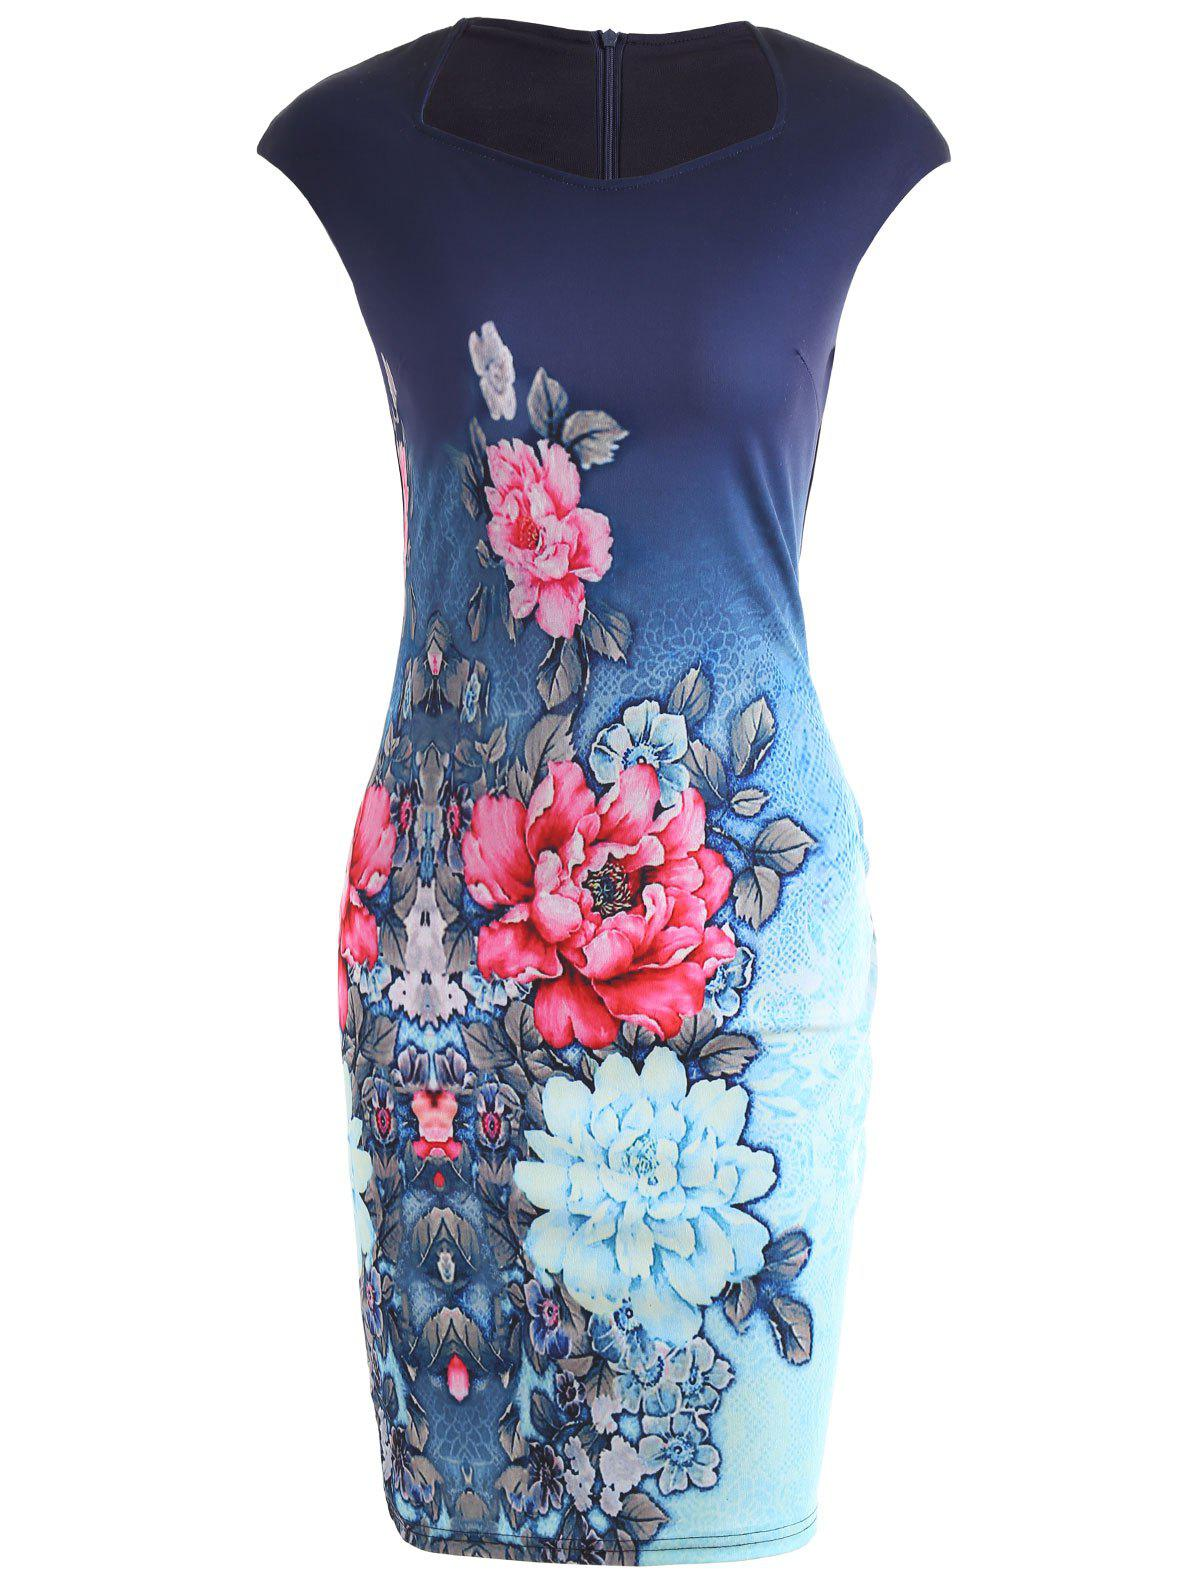 New Floral Pencil Dress